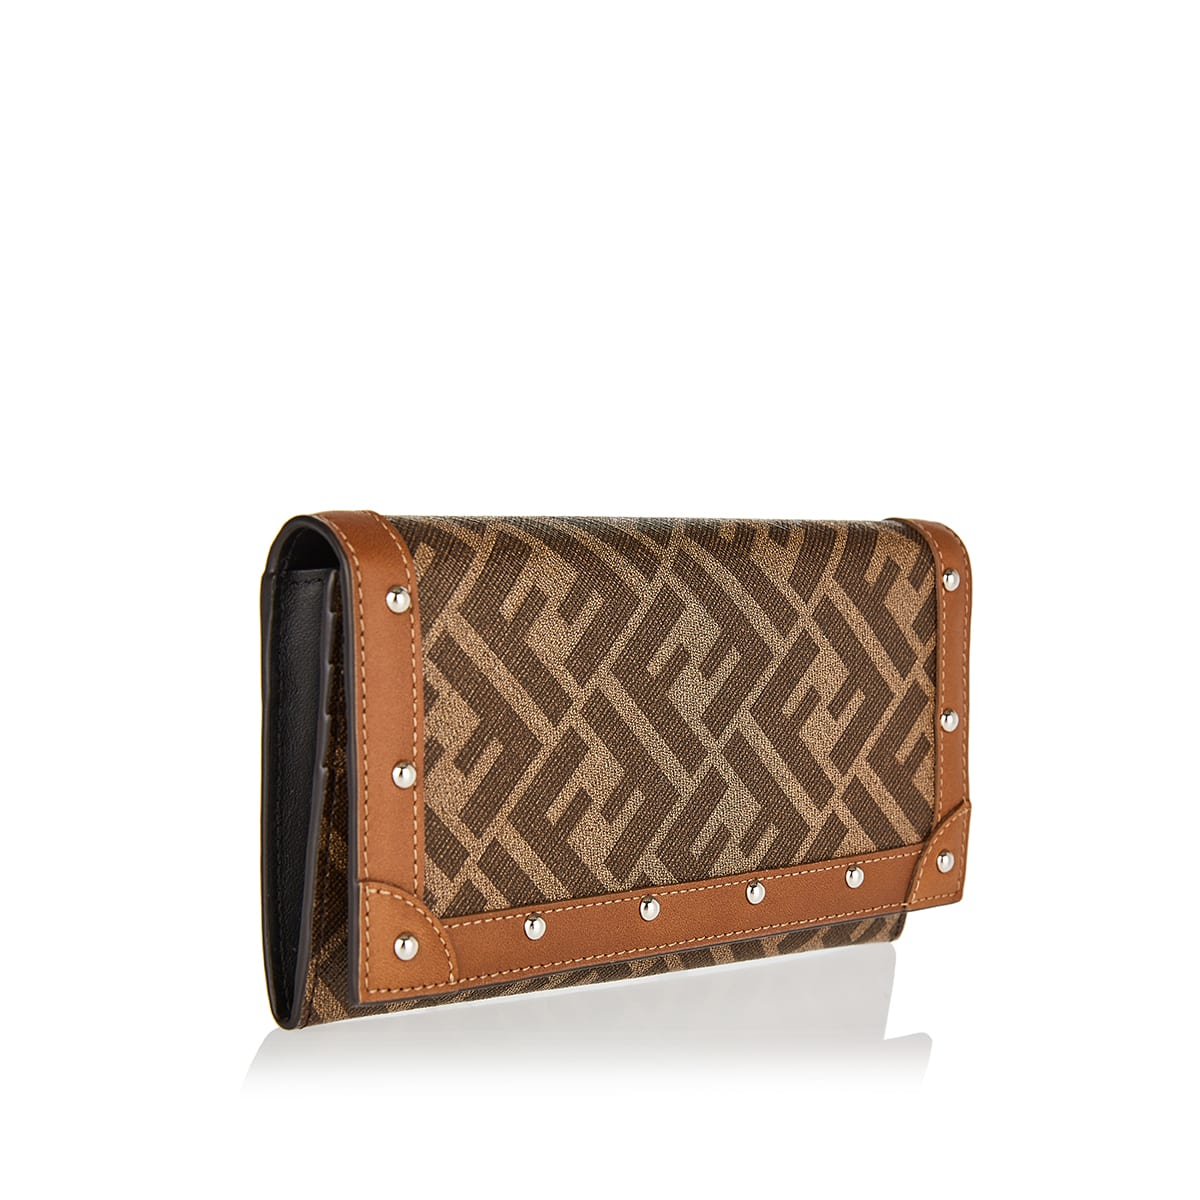 FF studded continental wallet